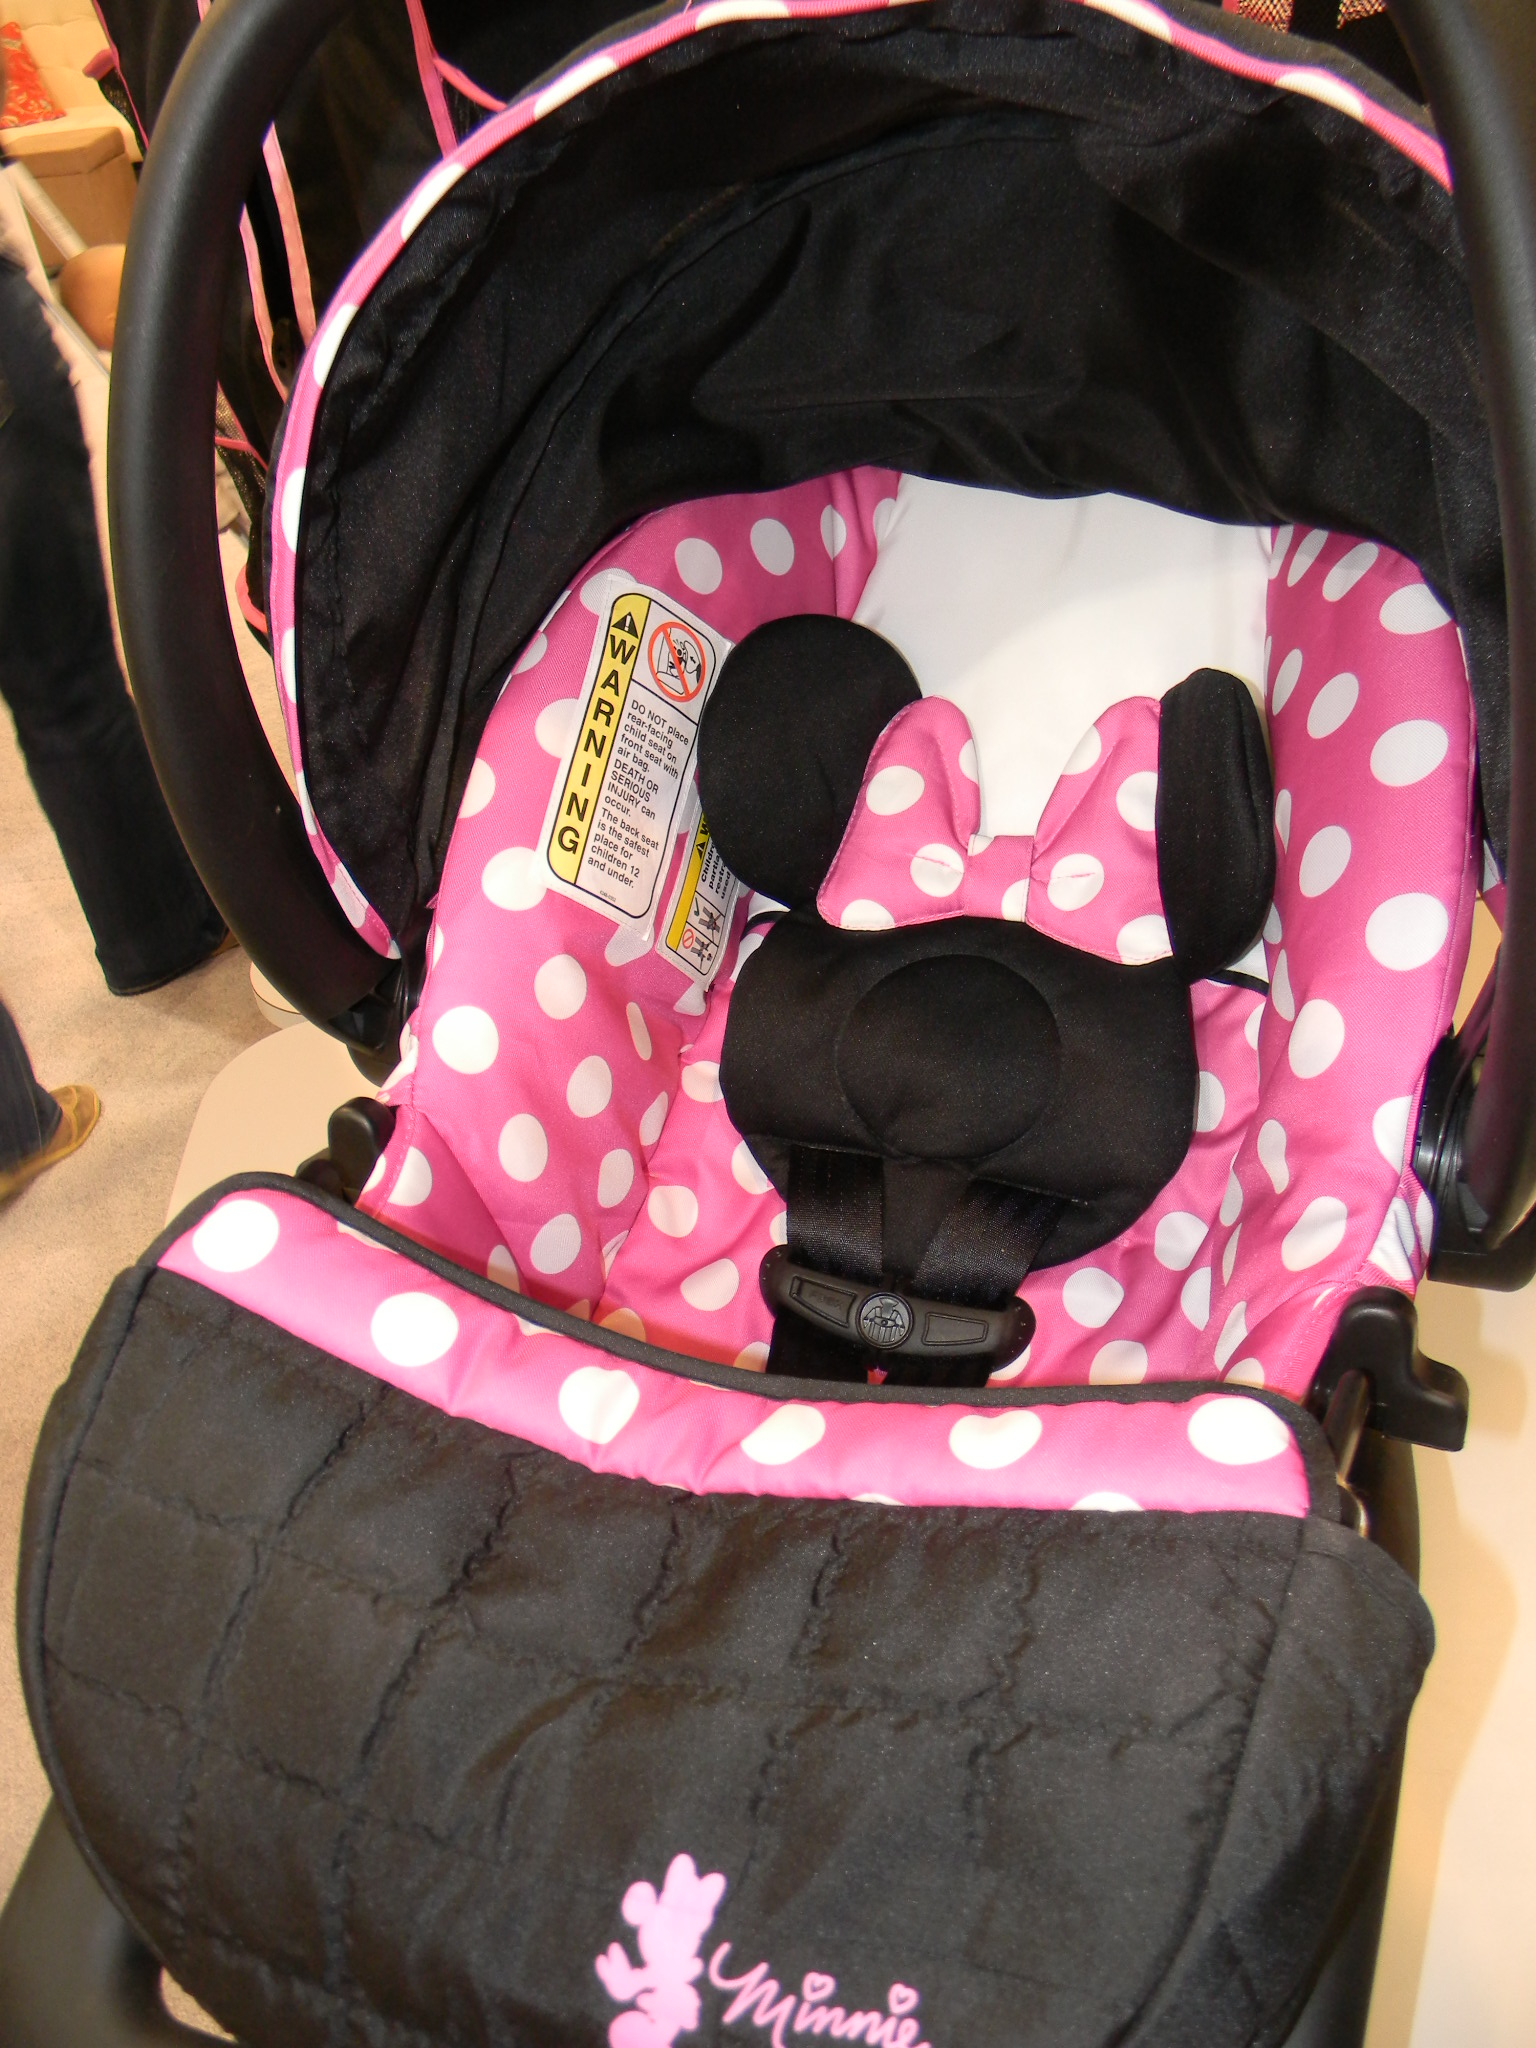 Minnie Mouse Infant Car Seat And Stroller Carseatblog The Most Trusted Source For Car Seat Reviews